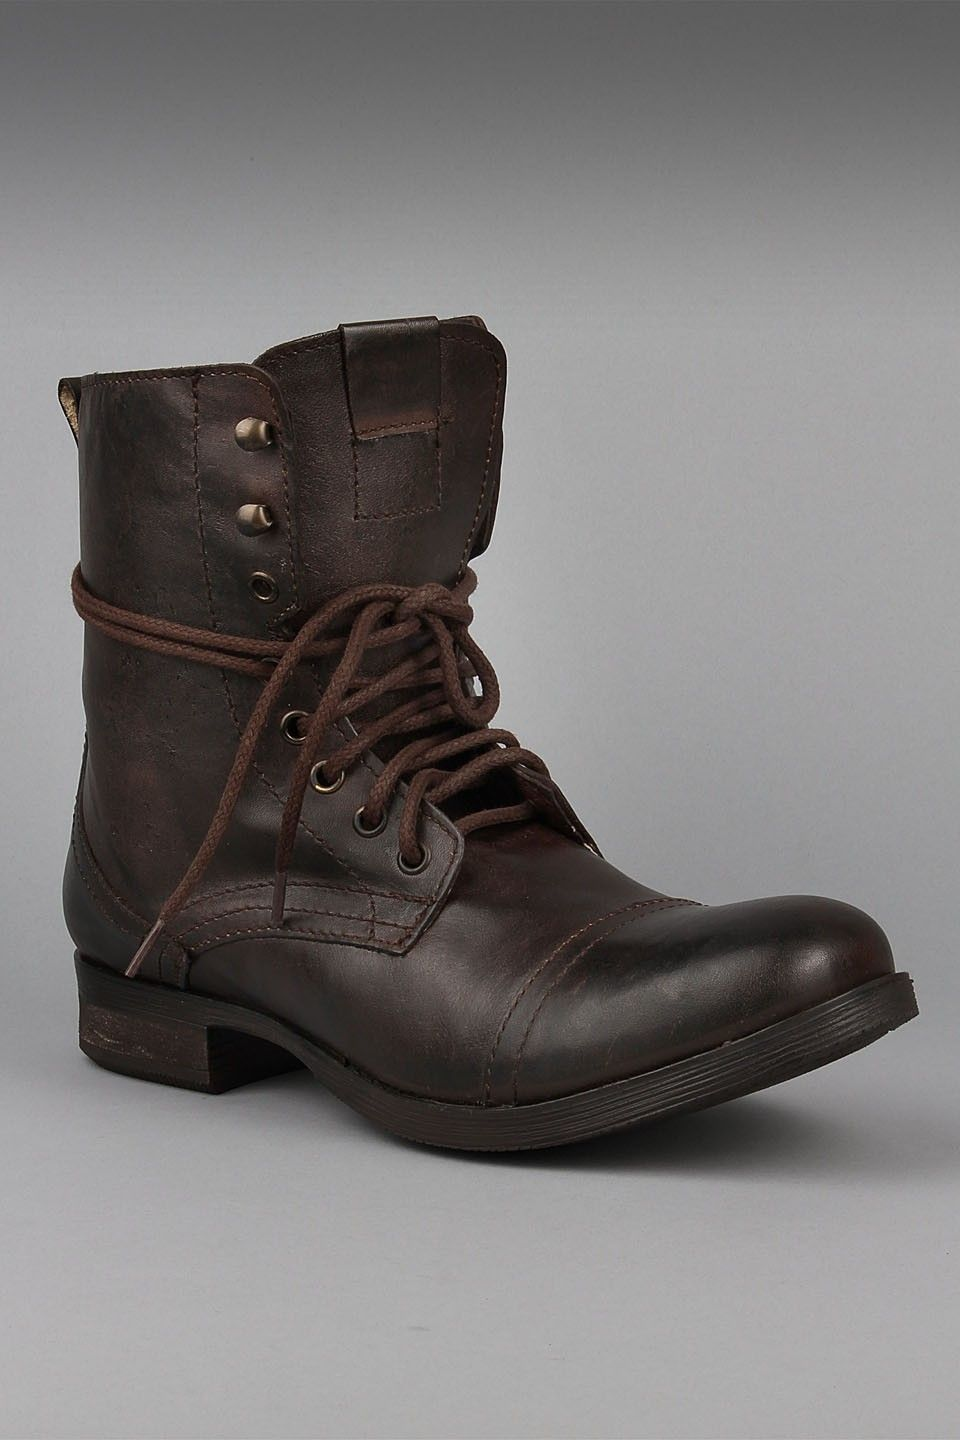 Steve Madden Gramm Men's Boot in Brown. Rock an edgy style with these dark  brown boots by Steve Madden. These boots lace up the front and end mid-calf.